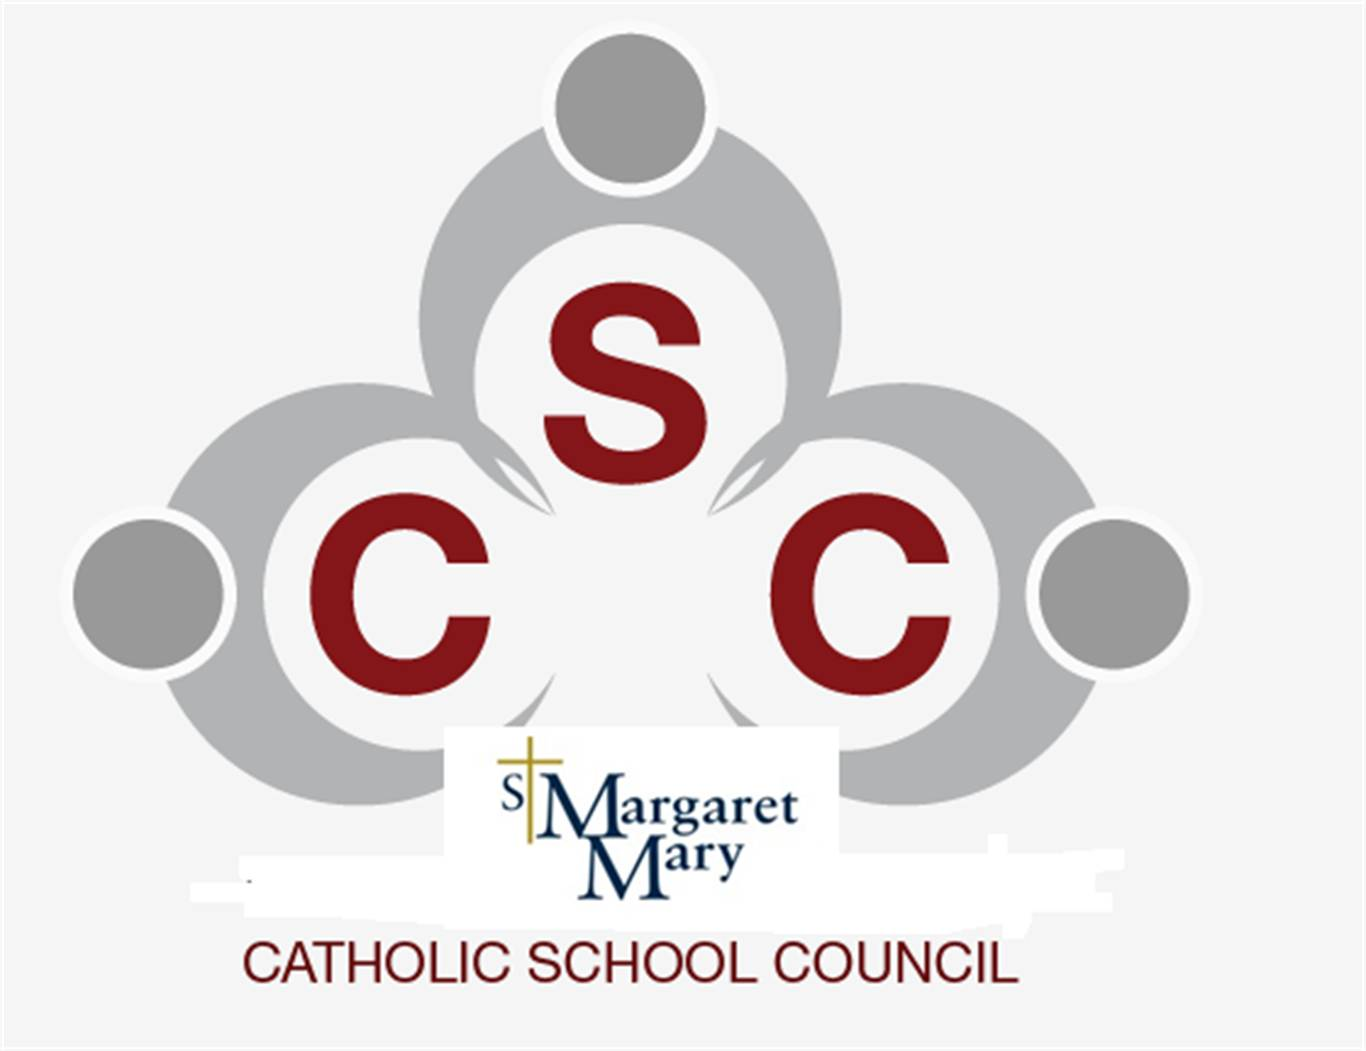 Catholic School Council Meeting Tonight (Monday January 15, 2018 at 6:00 pm)